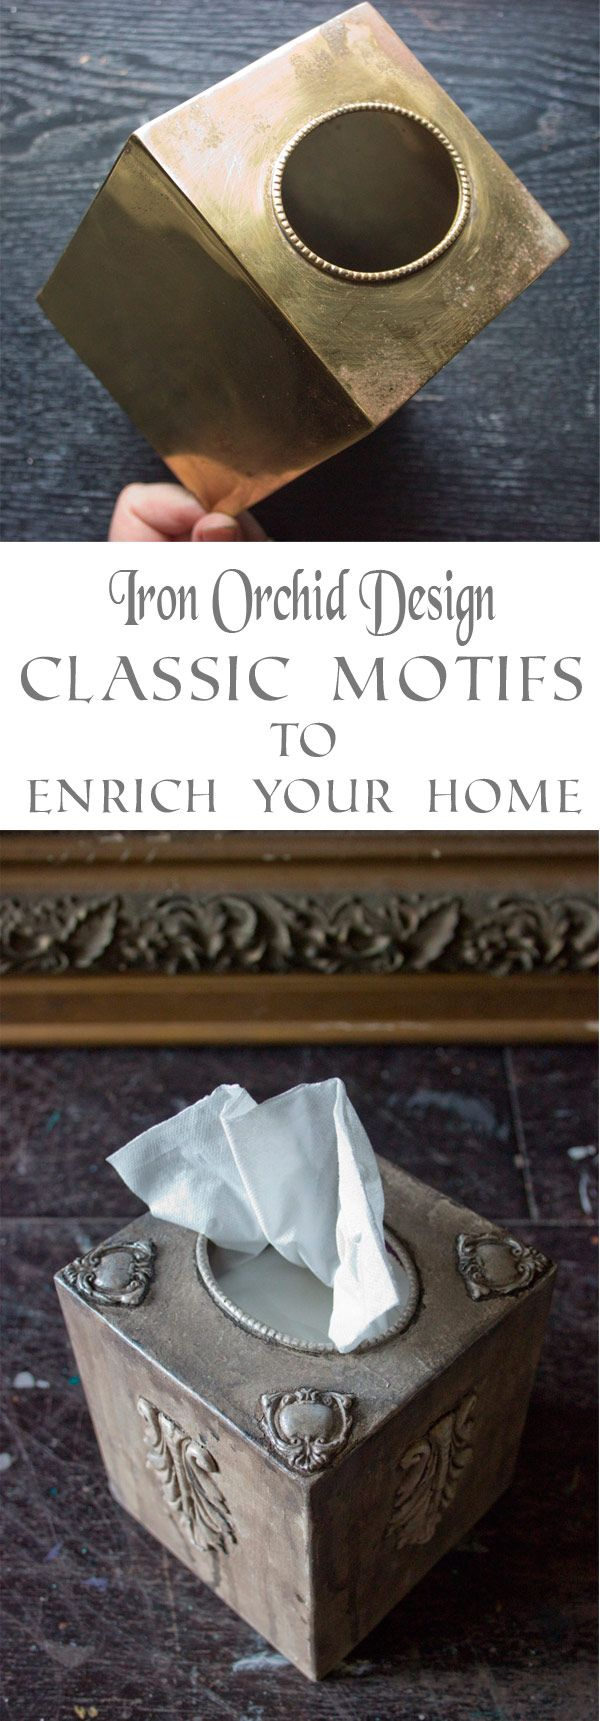 Use Iron Orchid Design Moulds and simple paint finishing techniques to take your dated accessories to the next level. Step-by-step guide.